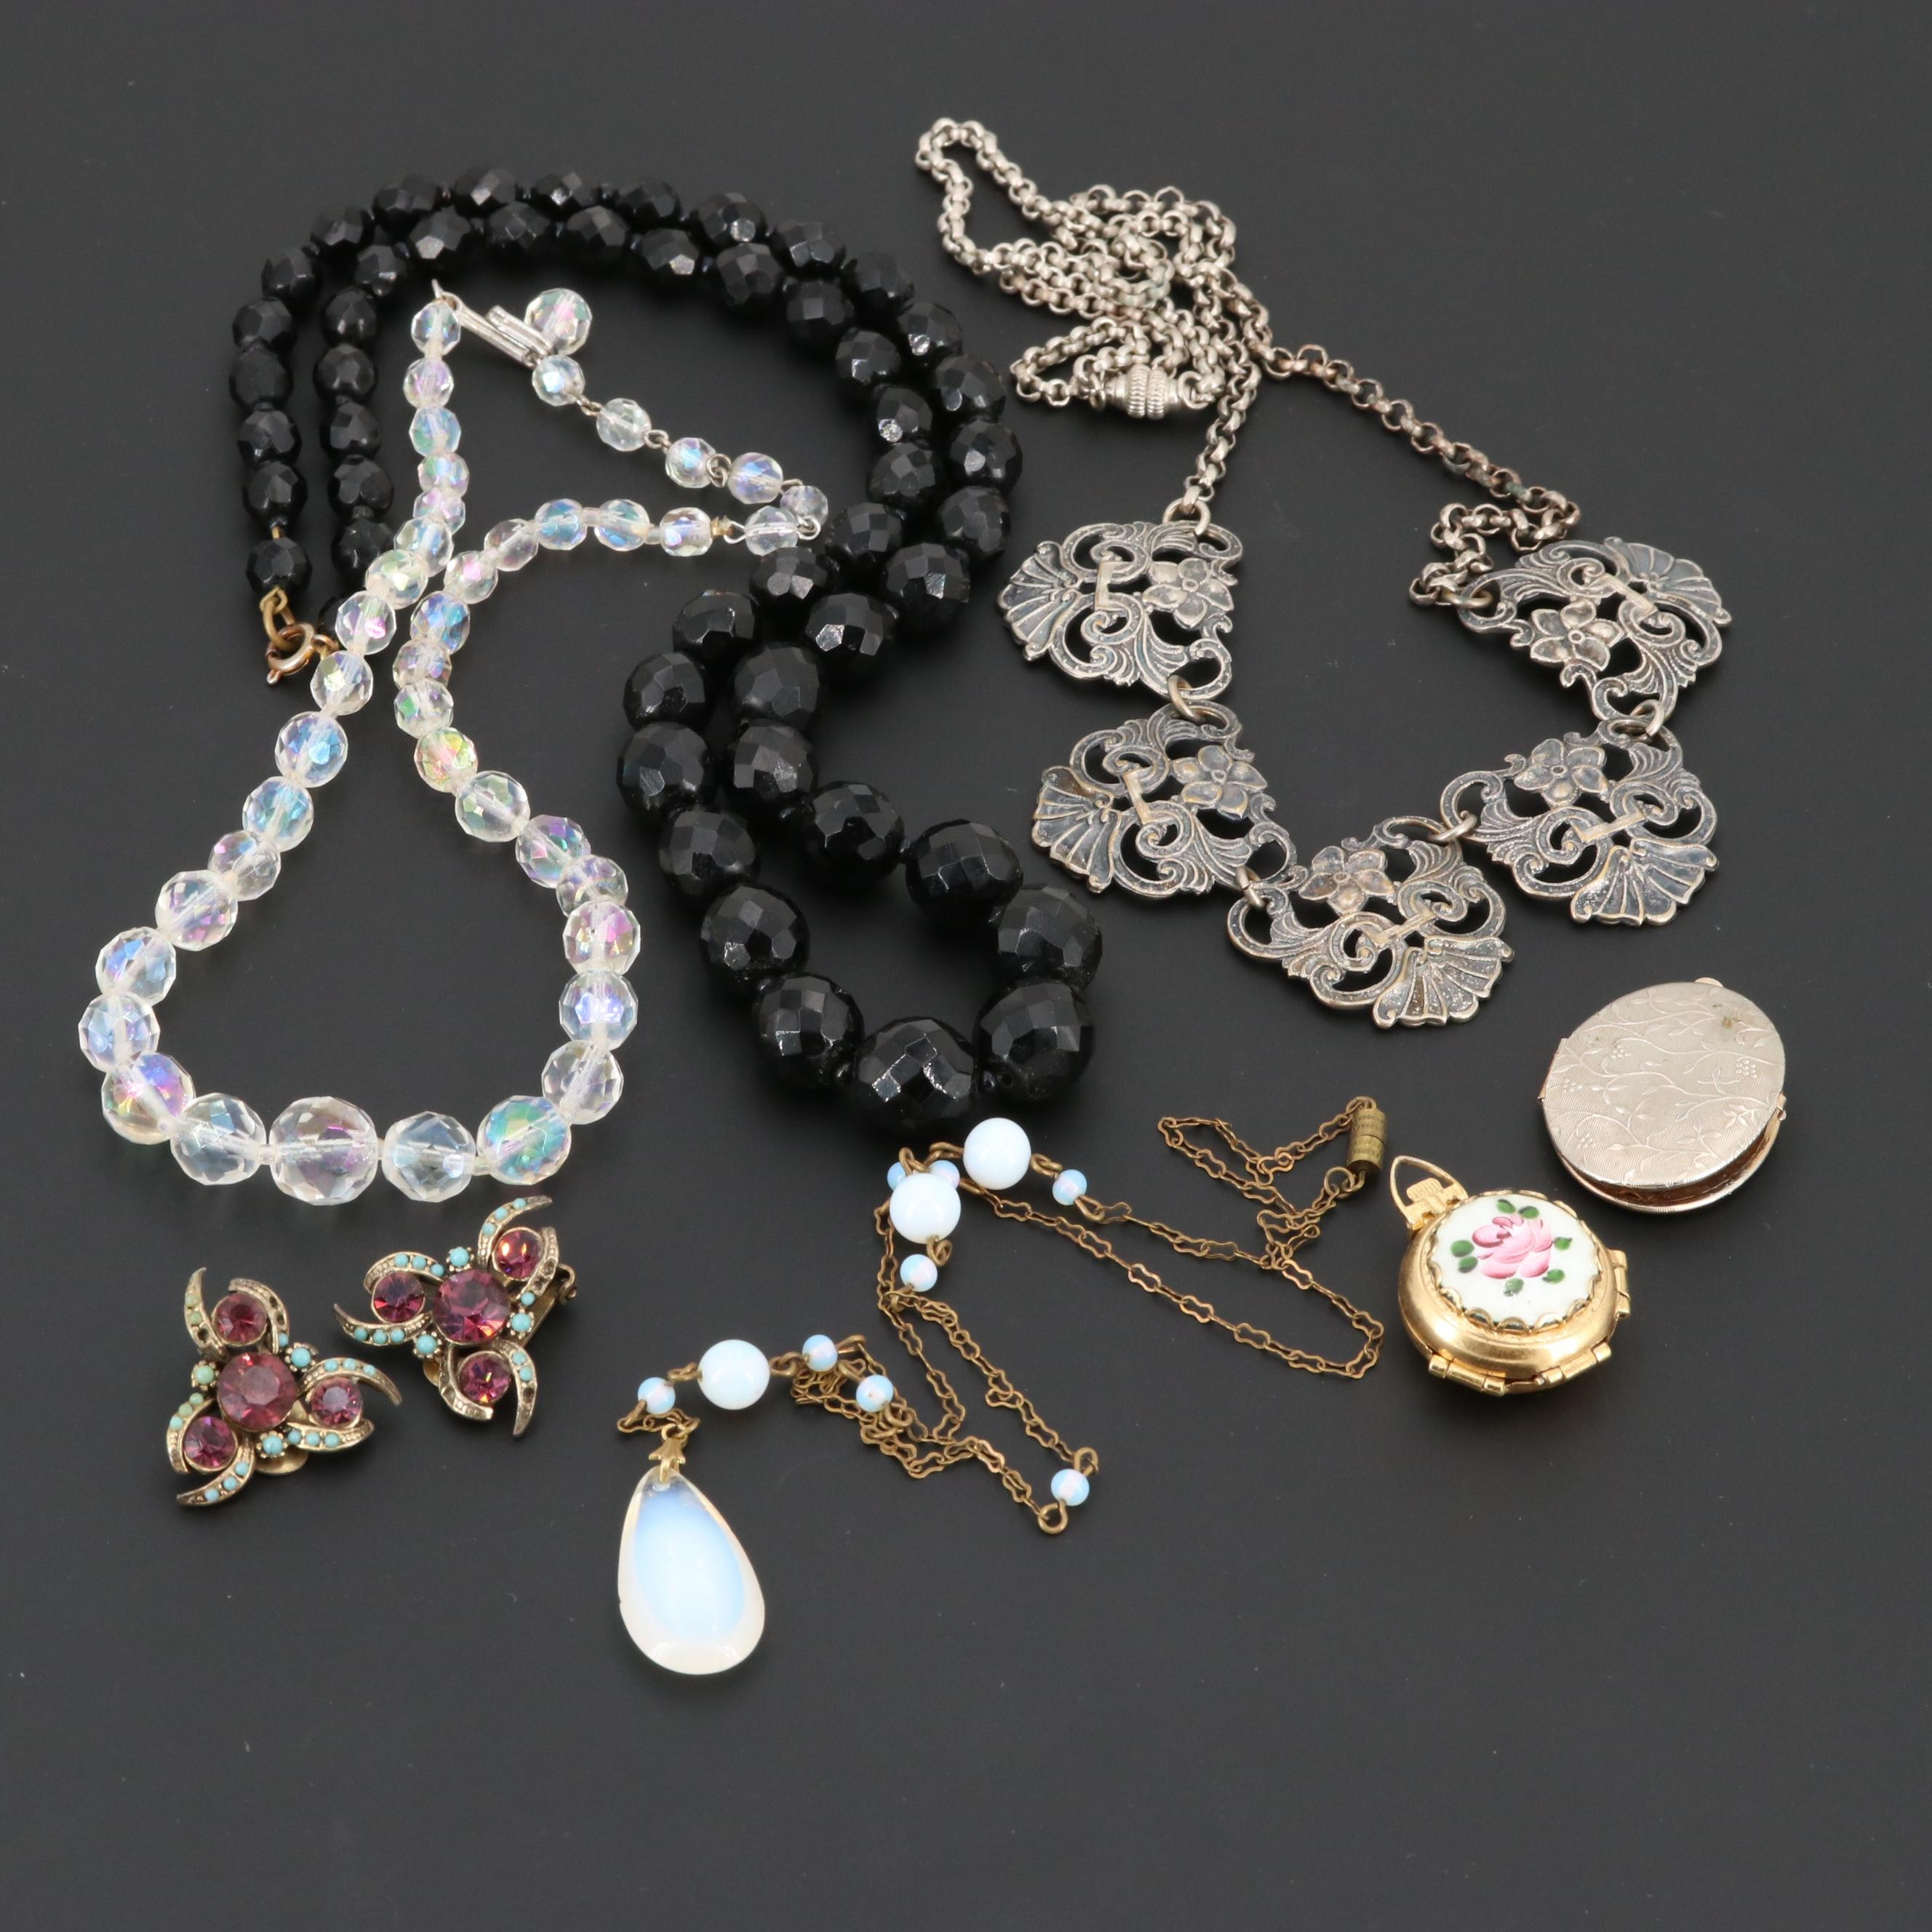 Assorted Vintage Glass and Enamel Jewelry